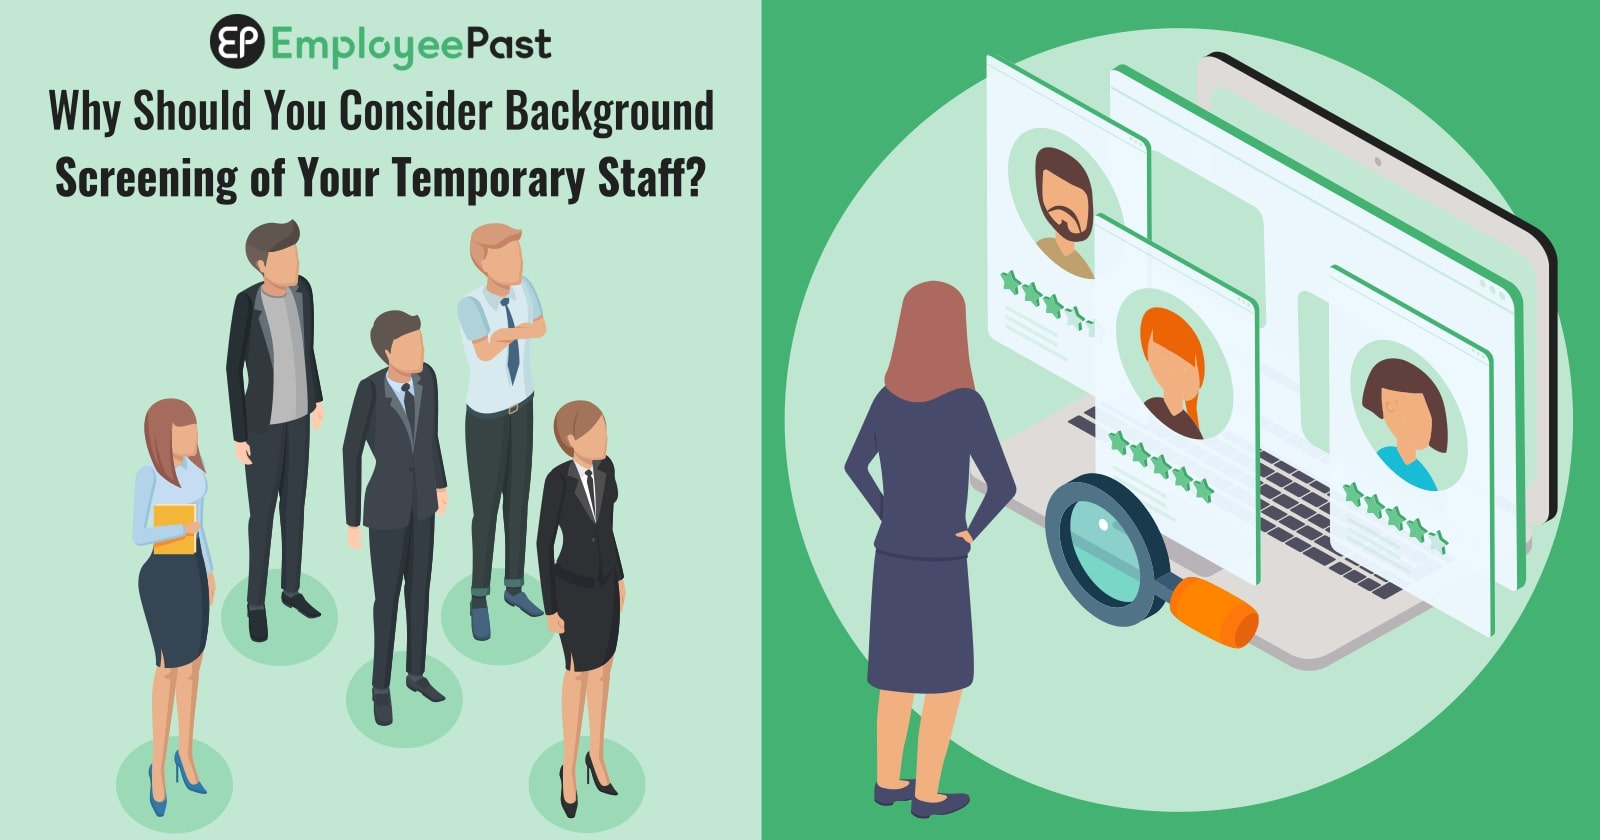 Why Should You Consider Background Screening of Your Temporary Staff?